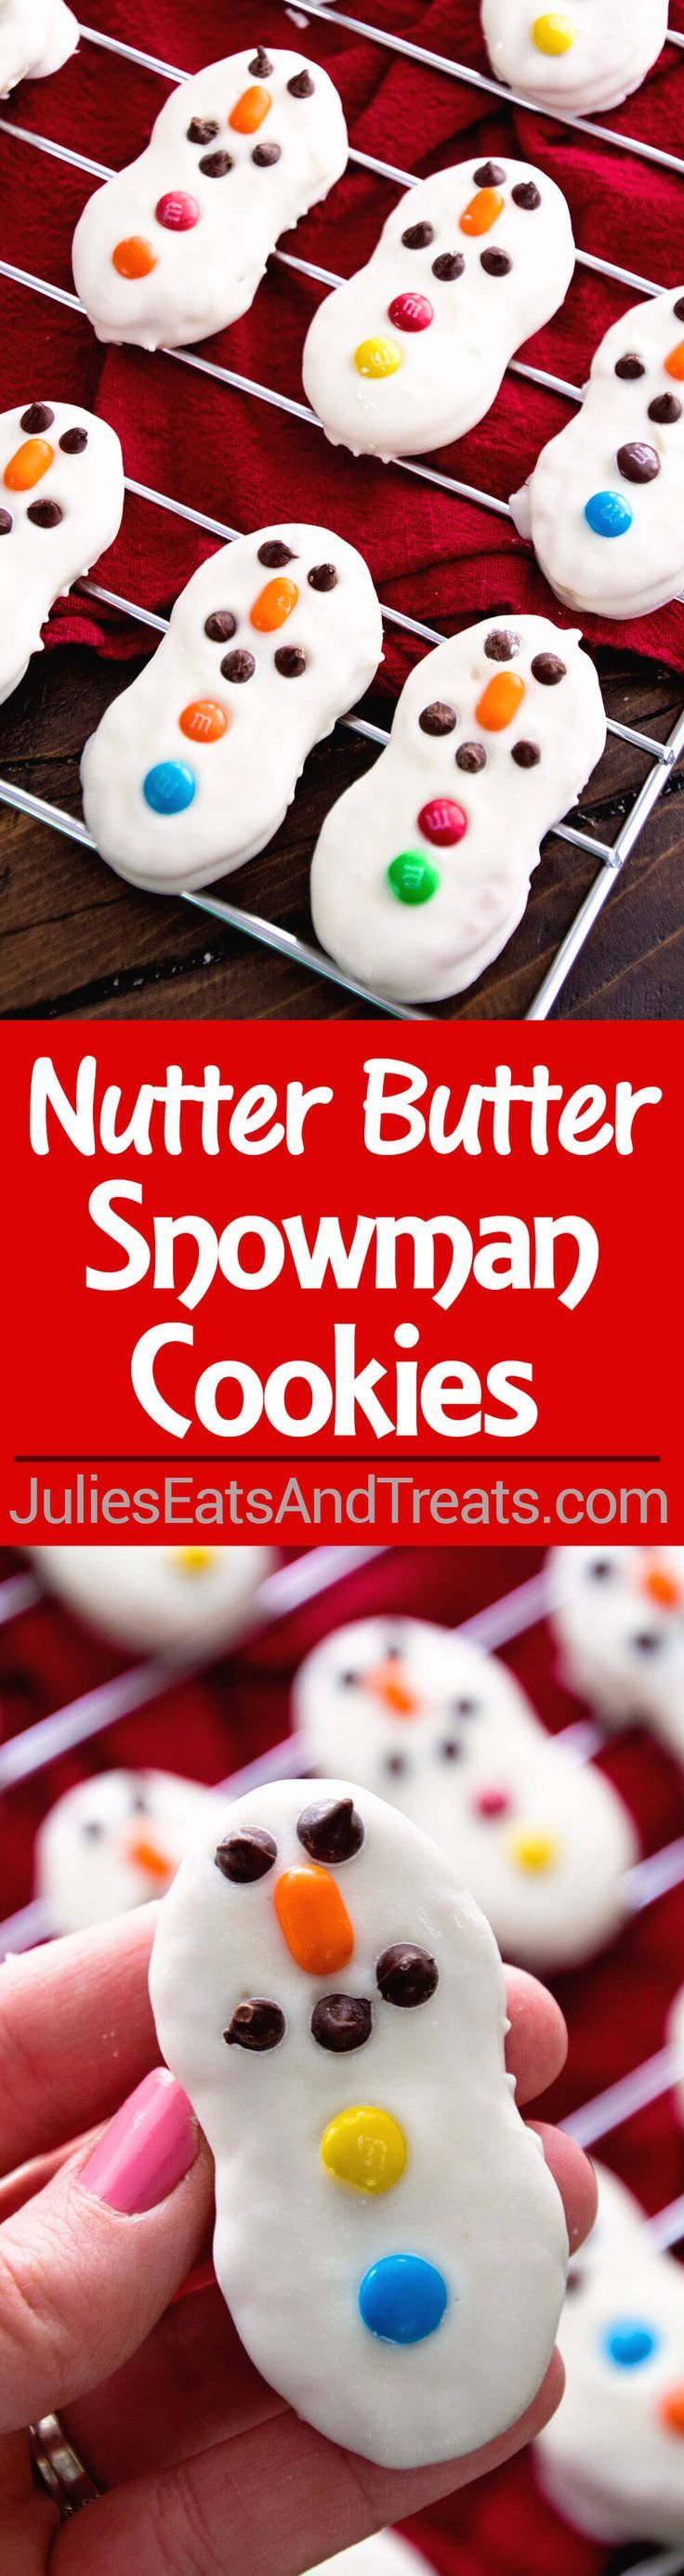 Snowman Cookies ~ Nutter Butter Cookies Dressed up as Cute Little Snowman for your Holiday Cookies!   via @julieseats